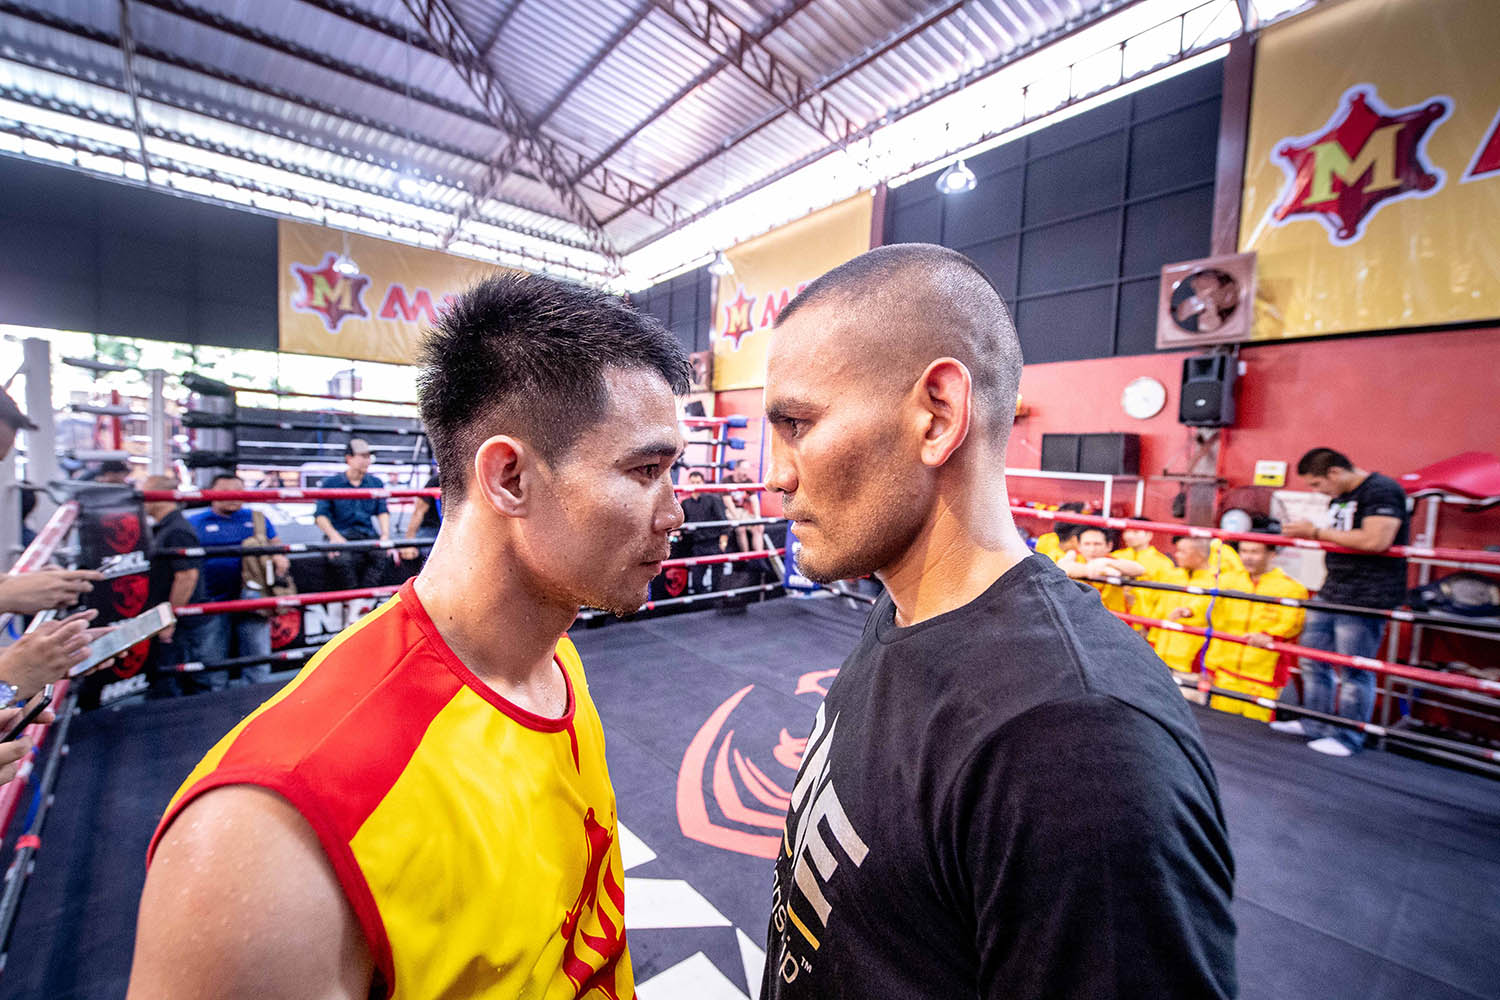 SRISAKET SOR RUNGVISAI FACES OFF WITH IRAN DIAZ AT ONE: KINGDOM OF HEROES OPEN WORKOUT